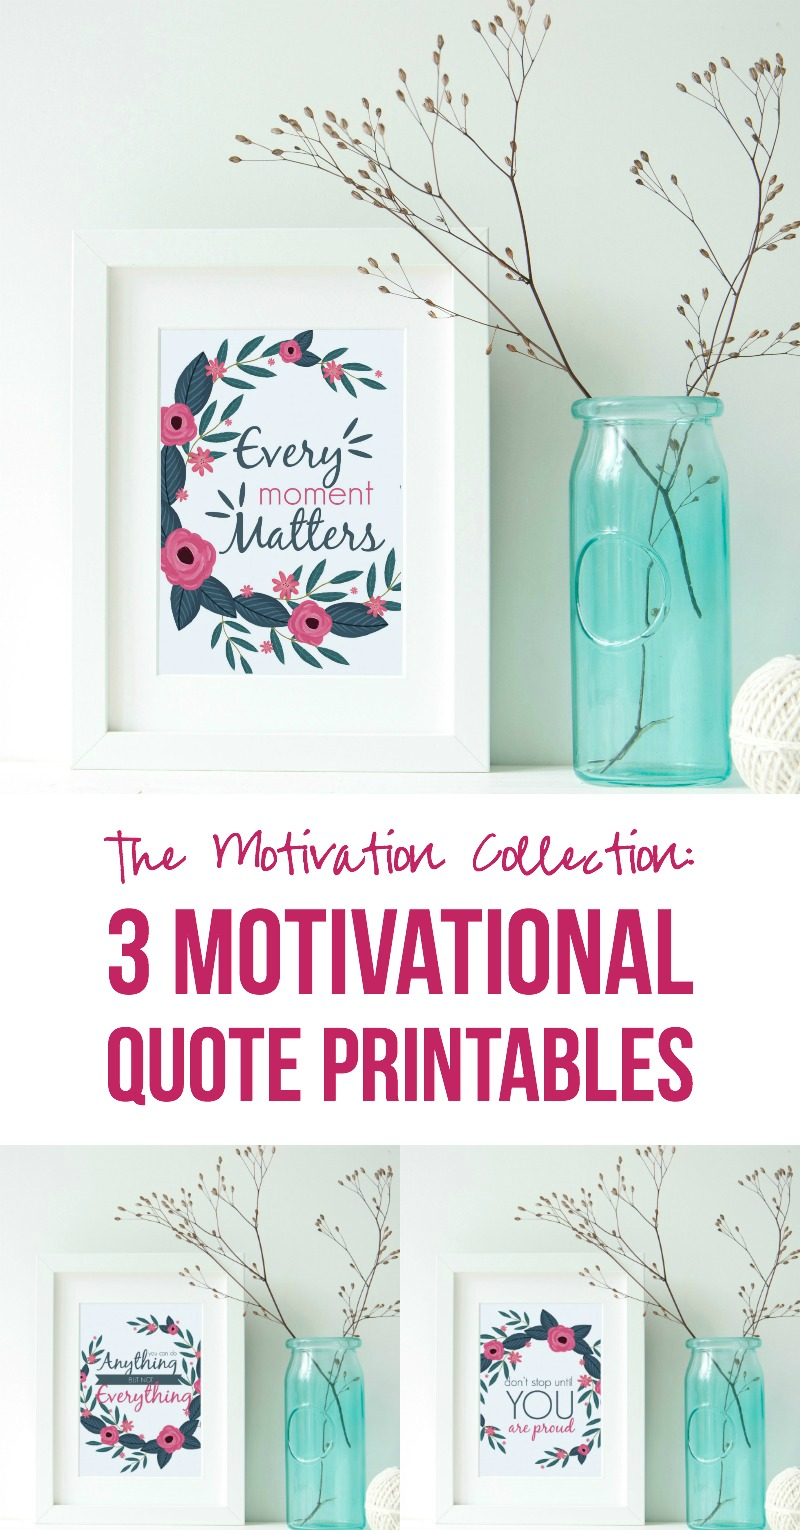 The Motivation Collection 3 Motivational Quote Printables